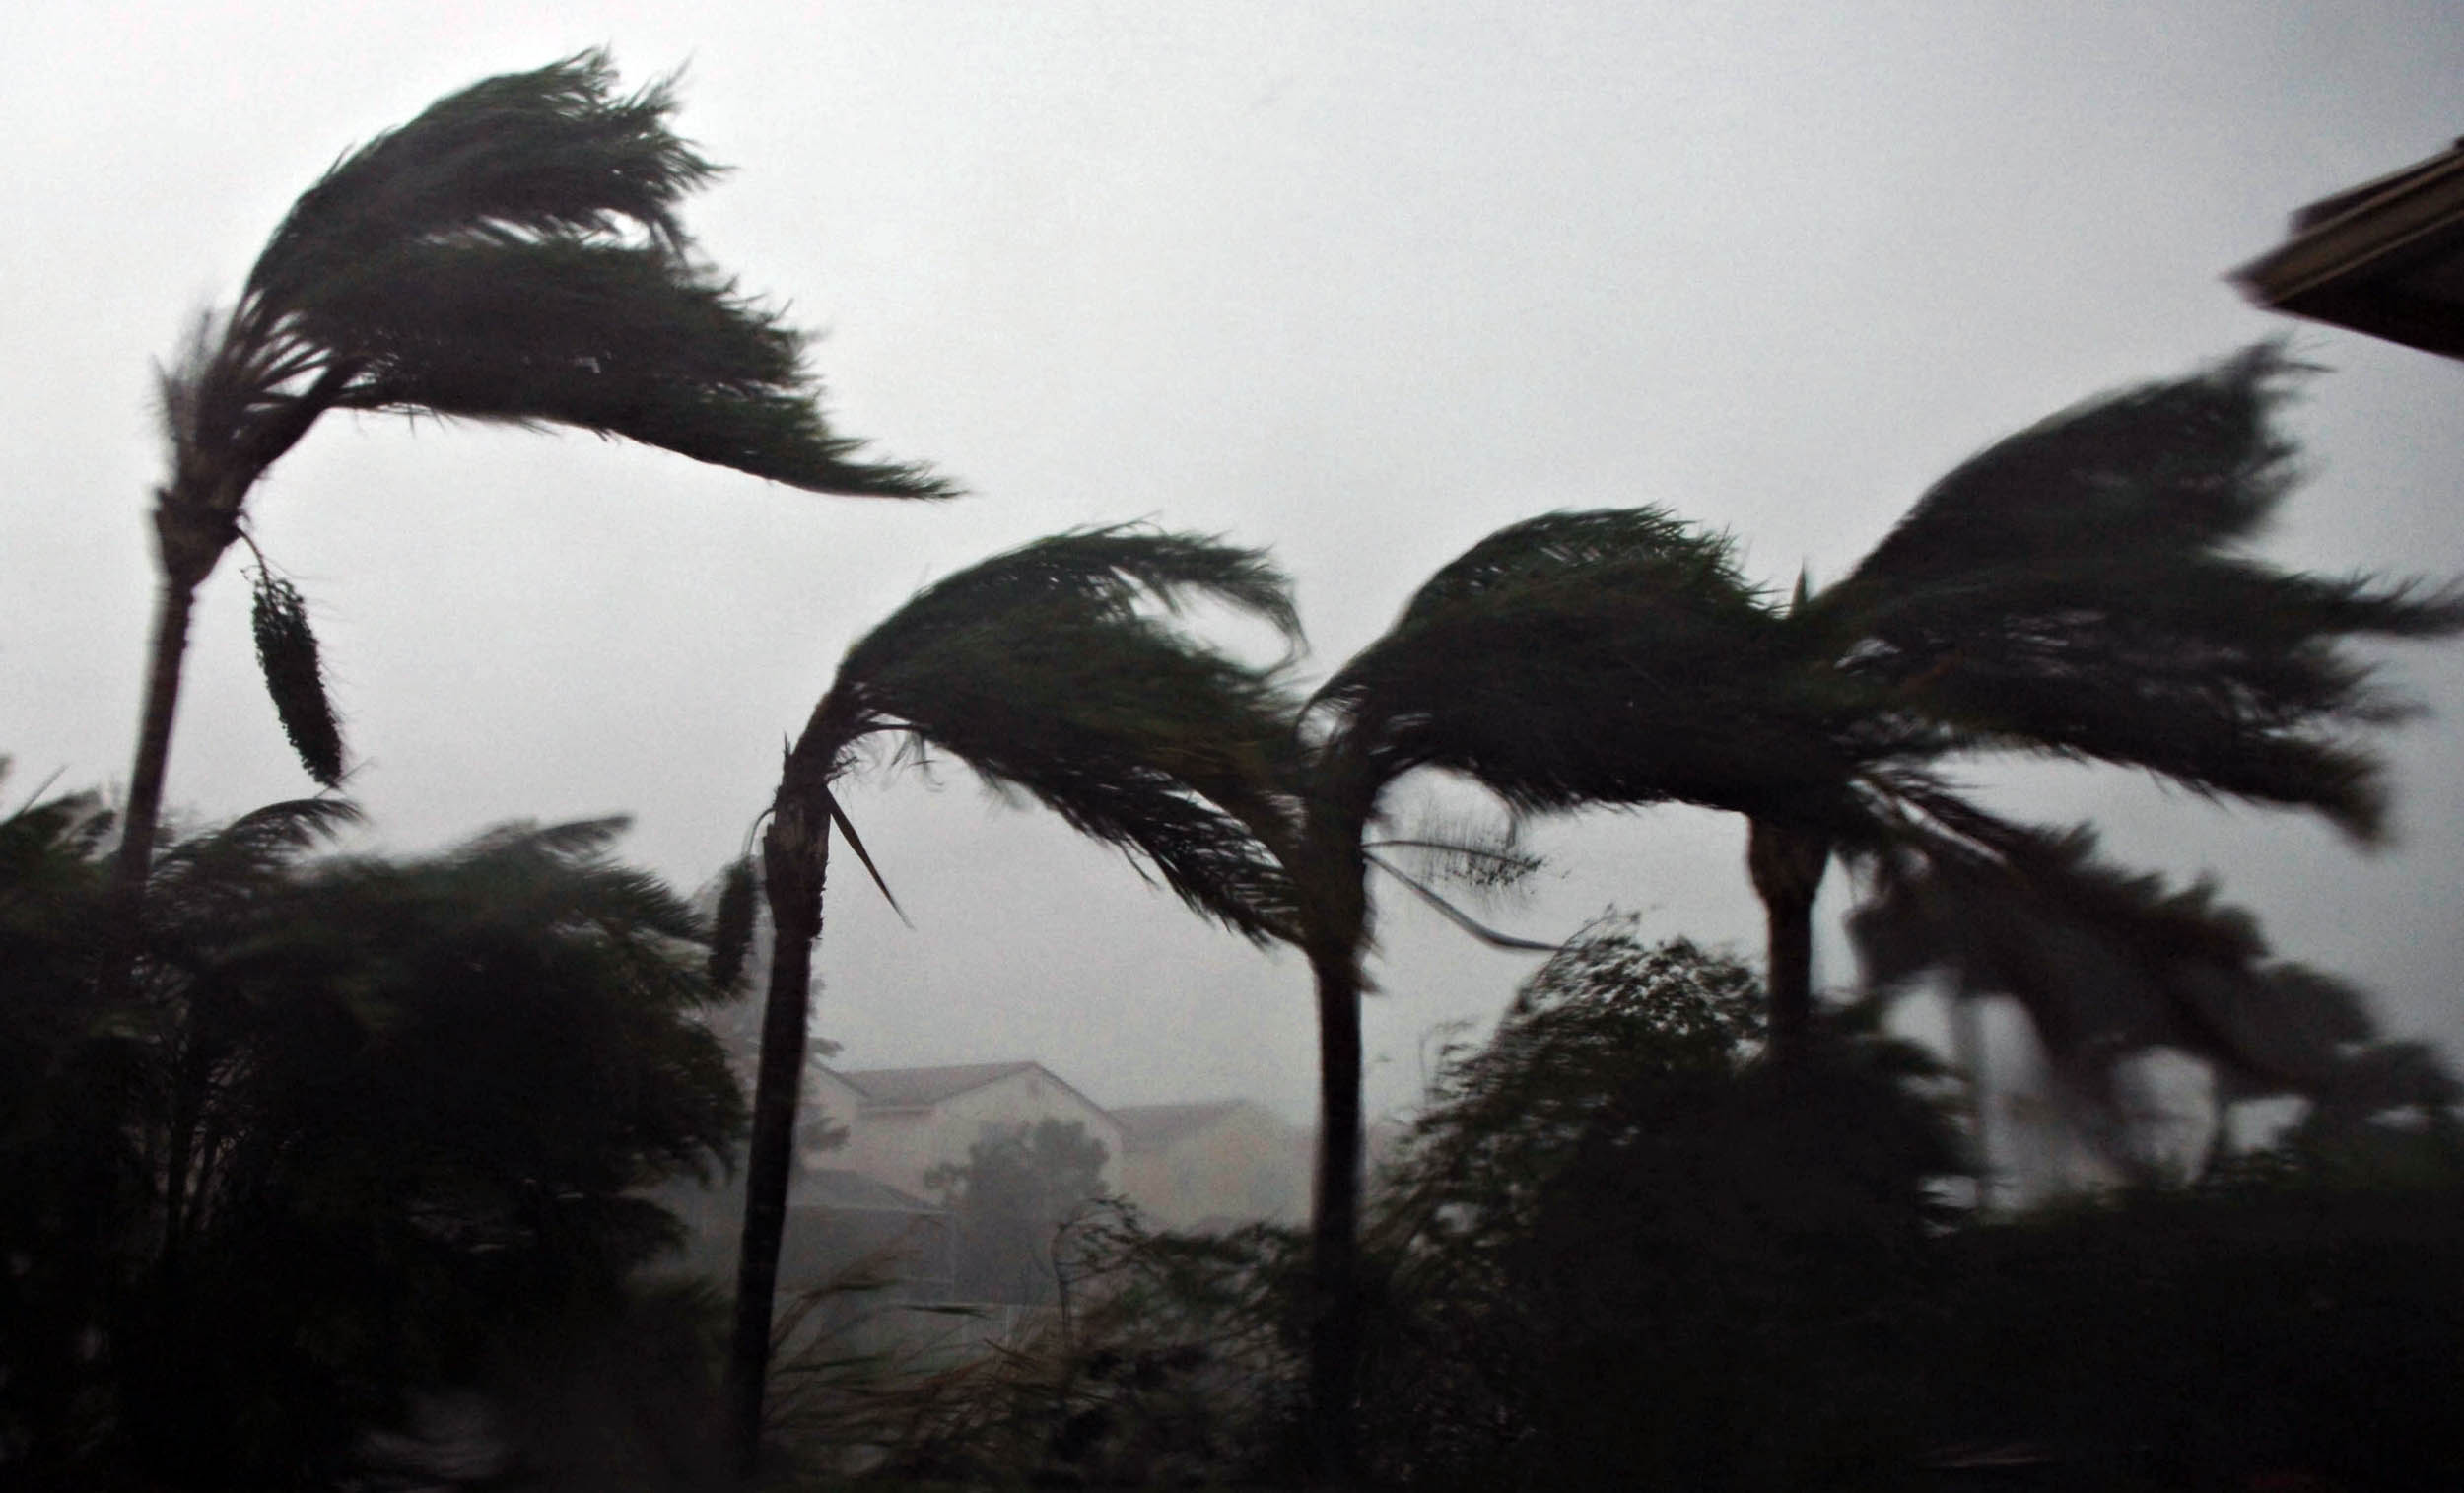 Palm trees bend in the winds of Hurricane Wilma as the storm makes landfall in Plantation, Florida on Oct. 24, 2005. Wilma was the last major hurricane to make landfall in the U.S.